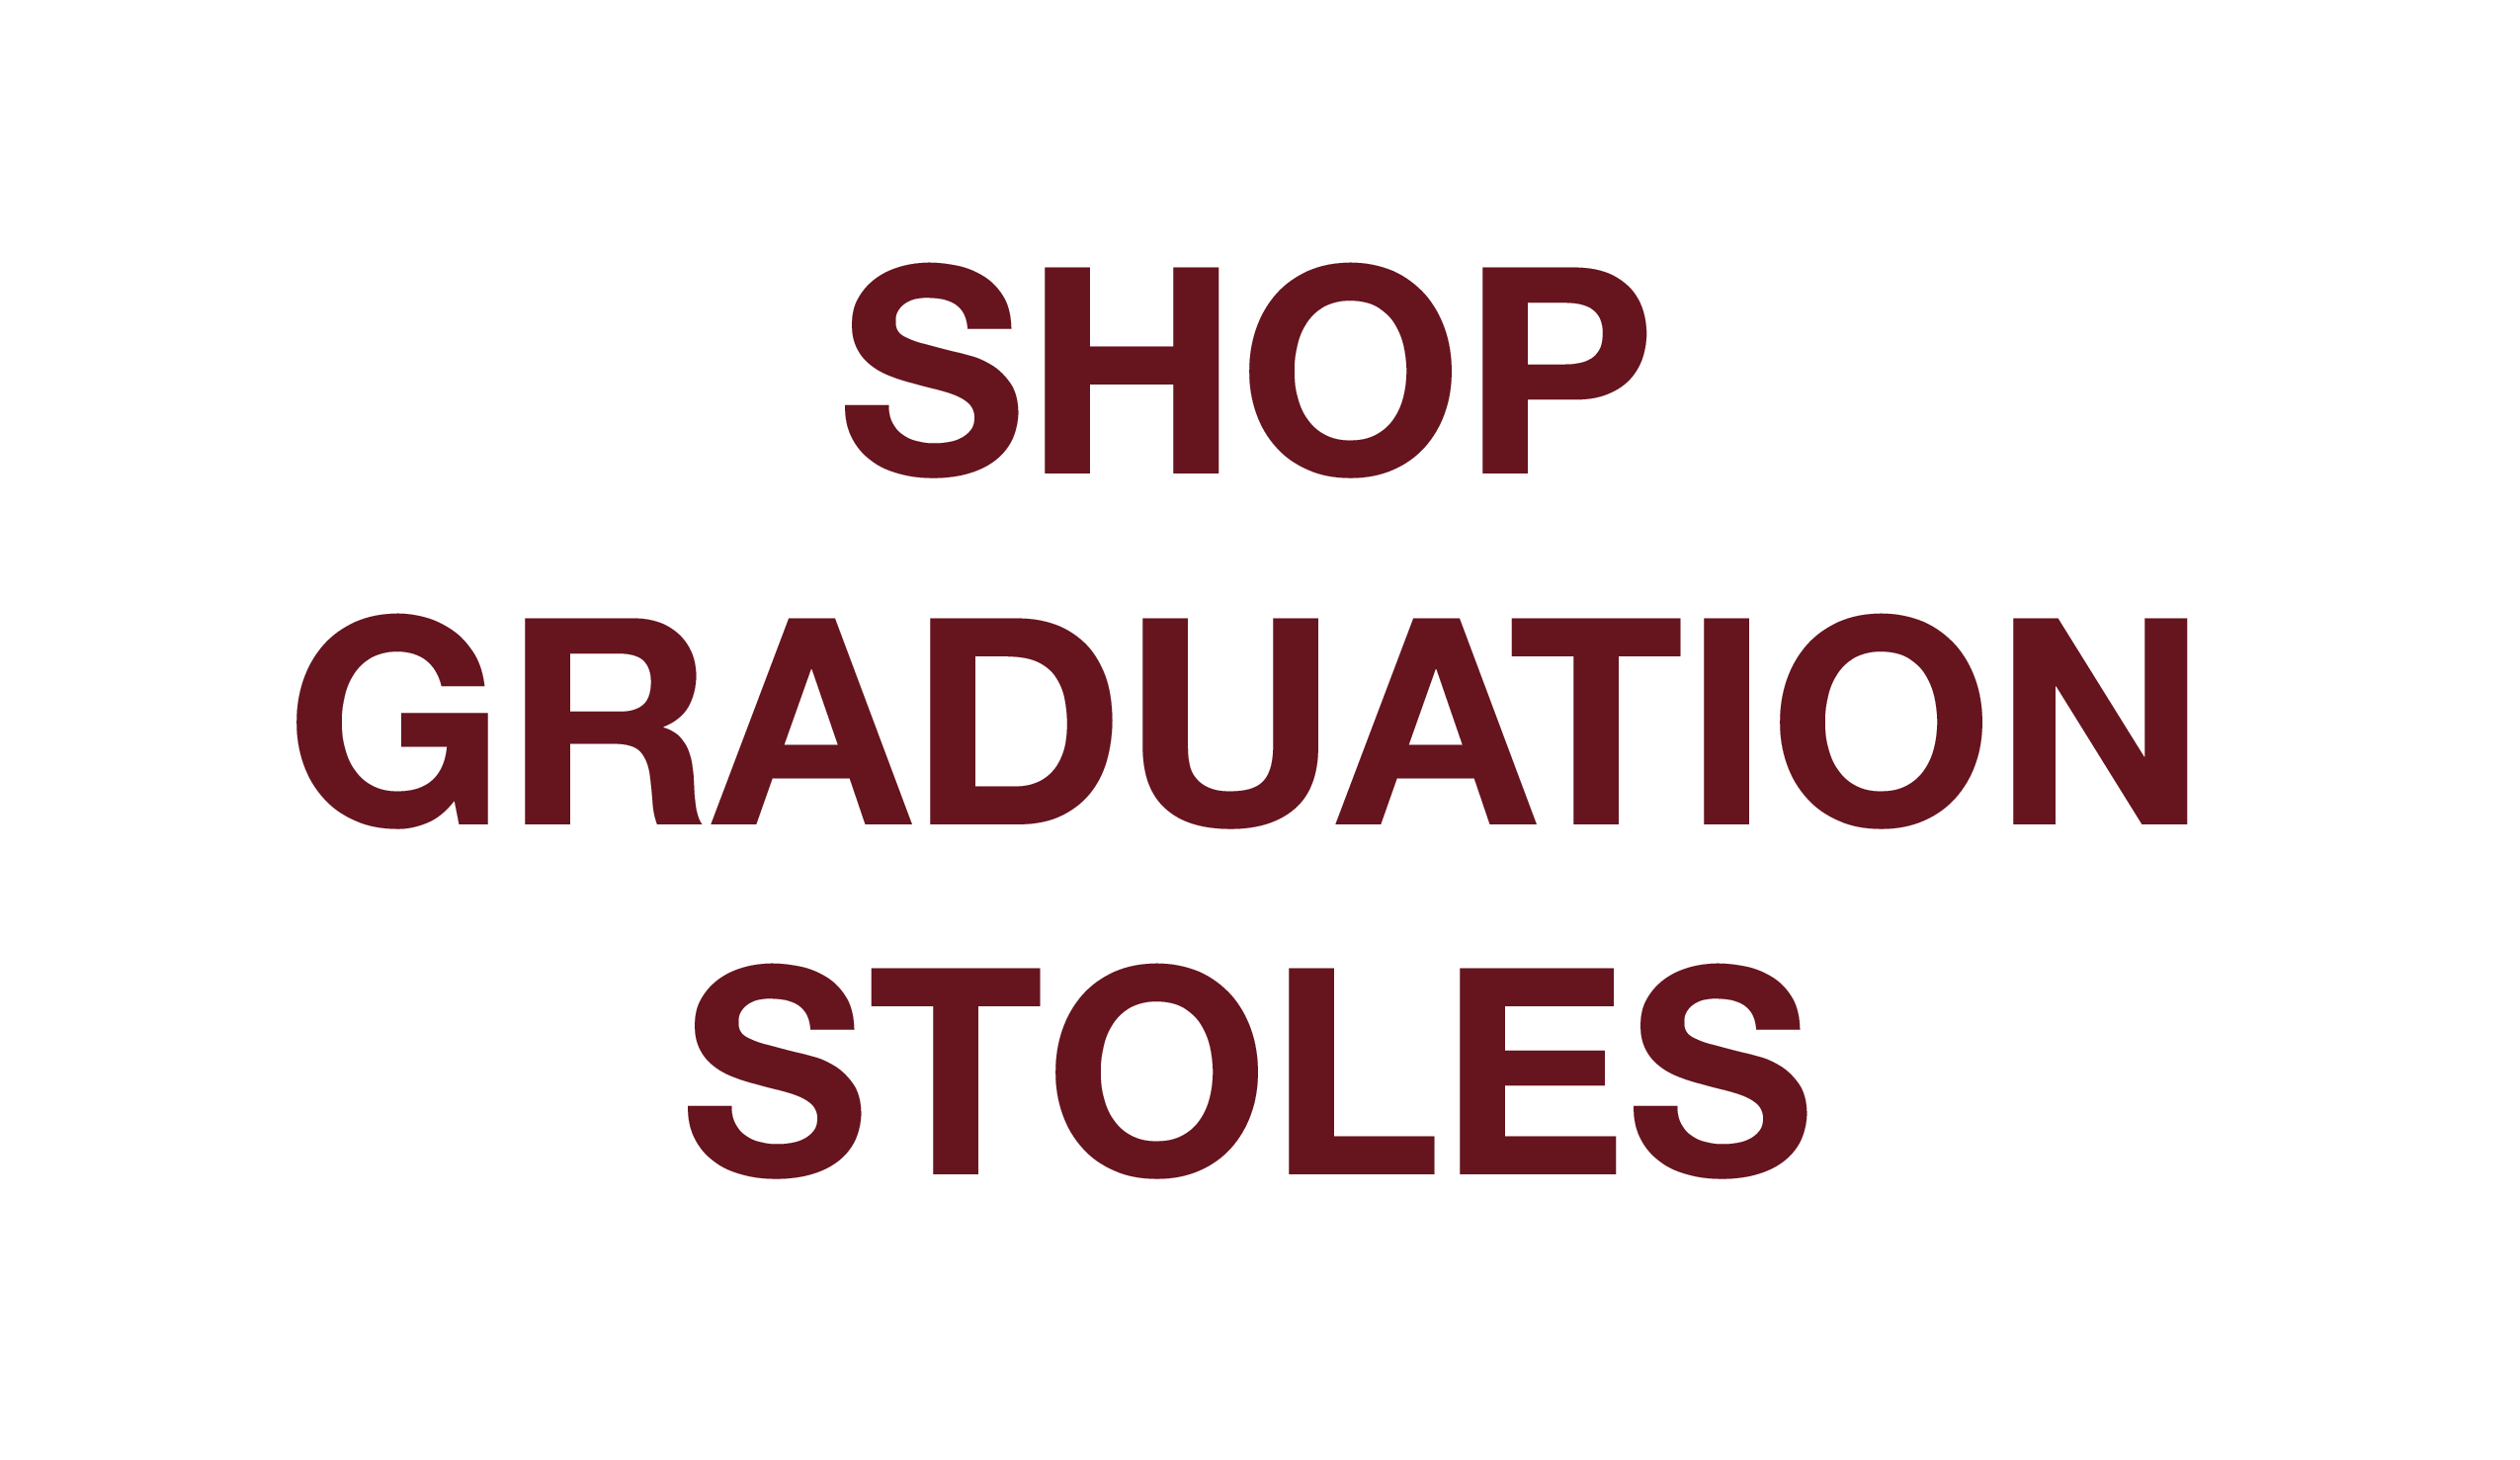 Customize Graduation Stoles, Greek Life Graduation Stoles, Graduation Sashes, Customize Texas State Graduation Stole